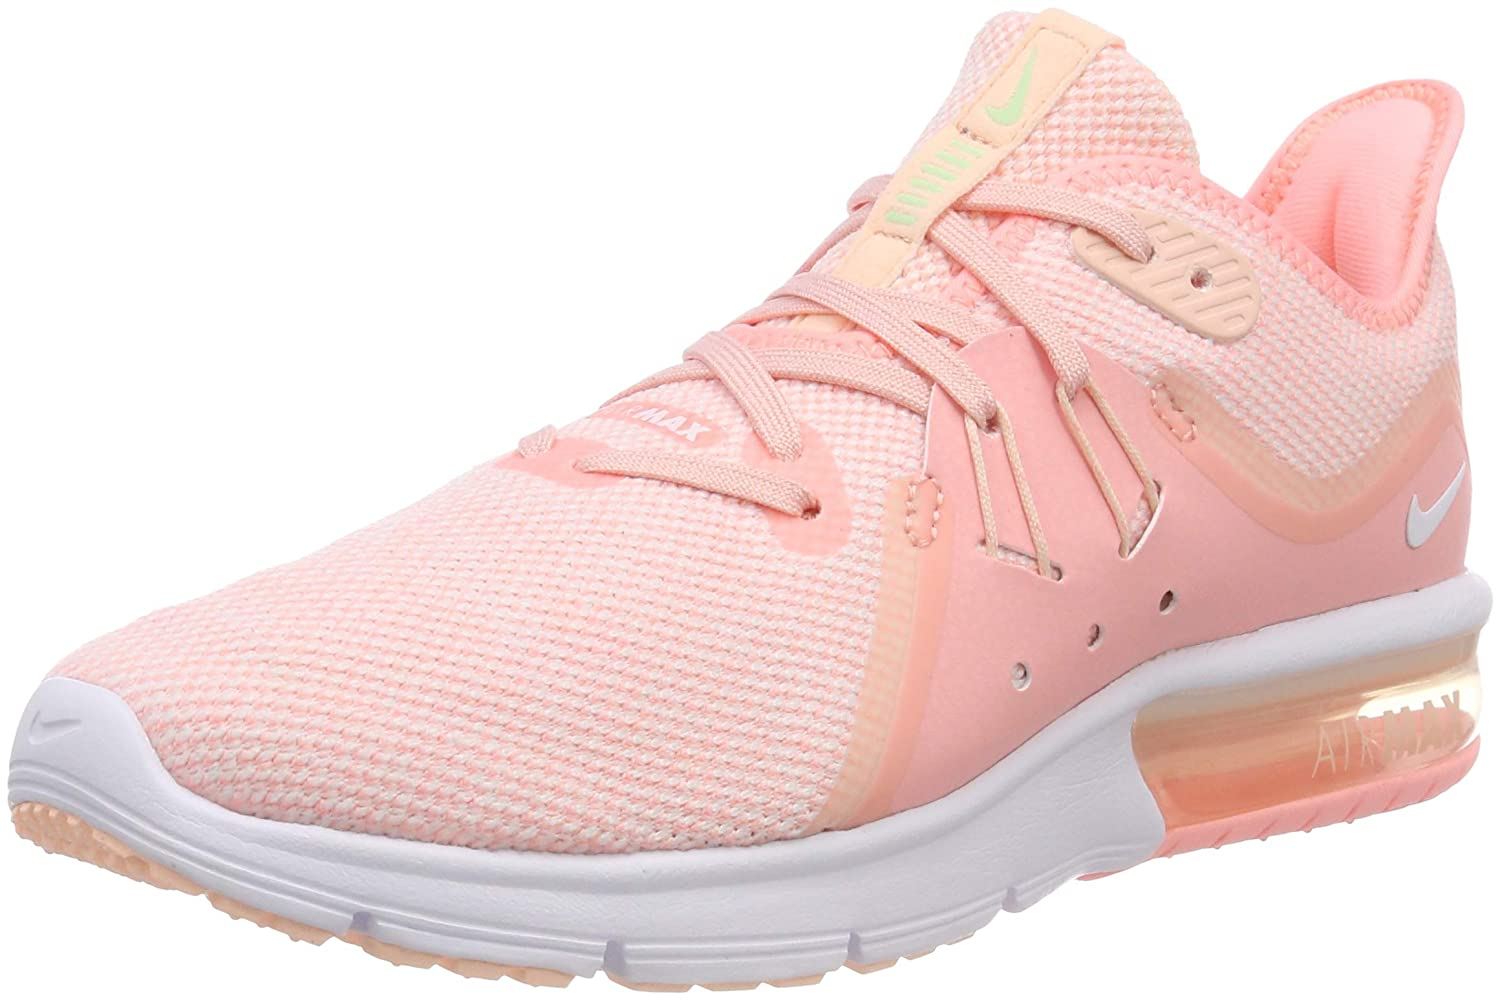 Nike Damen Air Max Sequent 3 Laufschuhe